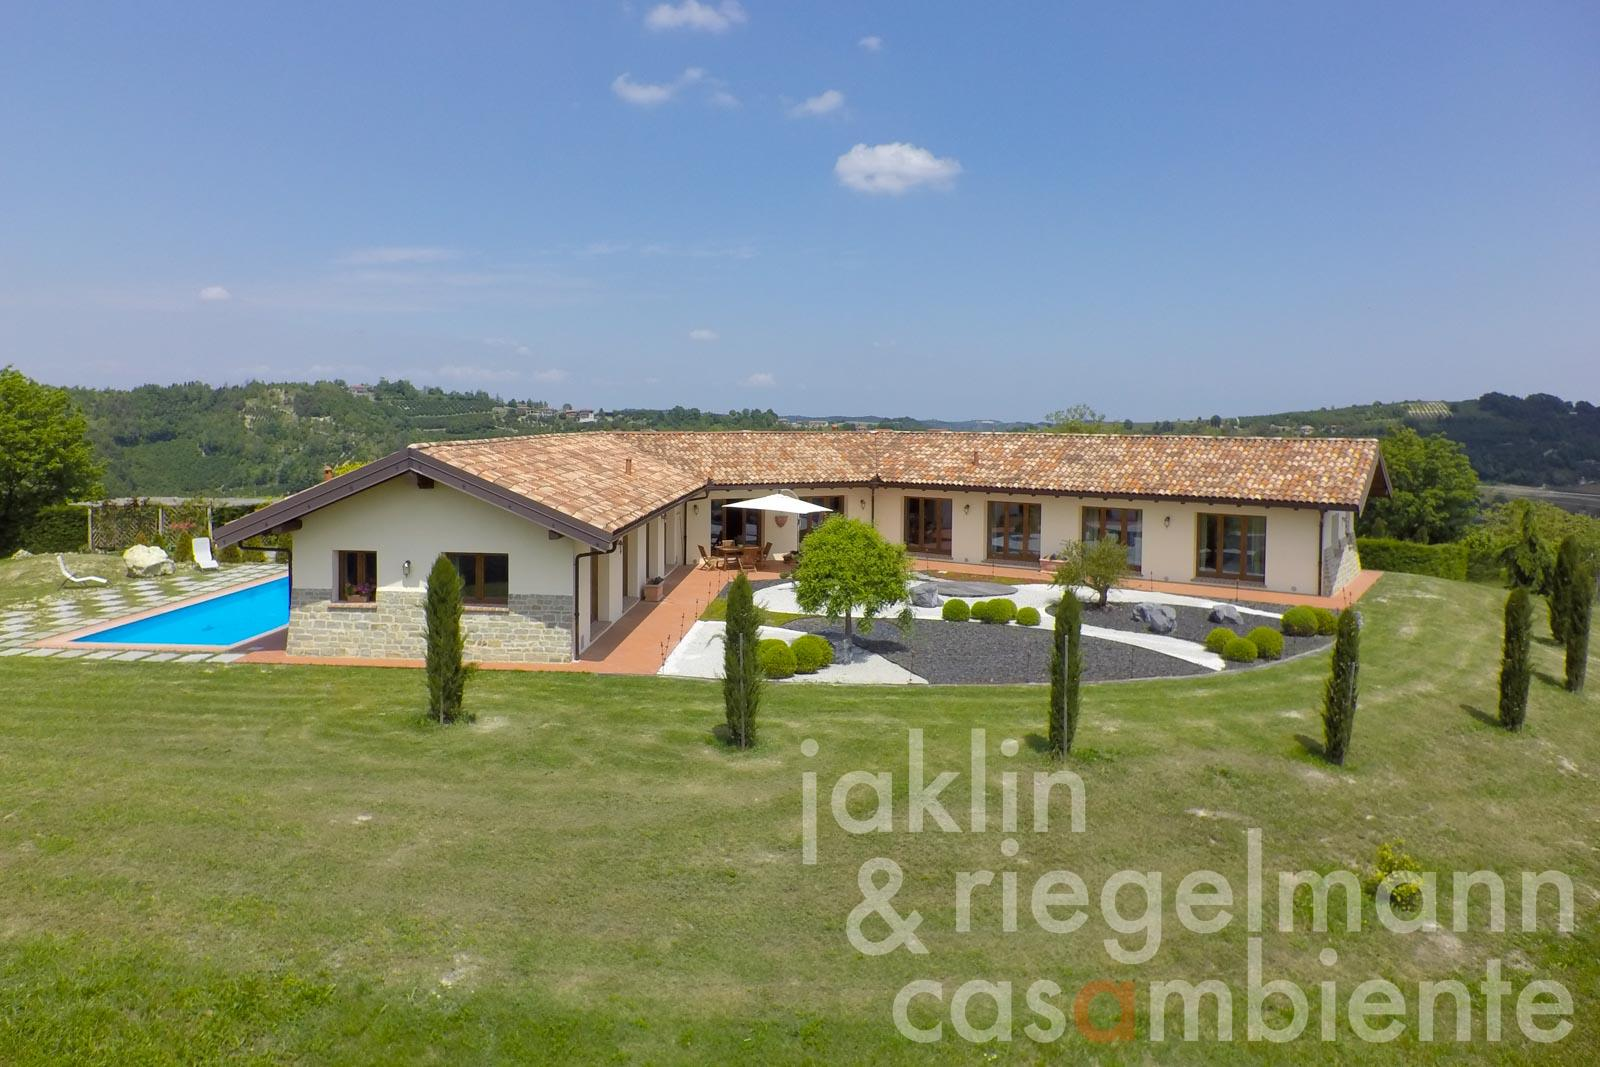 The modern villa for sale with swimming pool and bonsai garden in dream location close to the Barolo zone